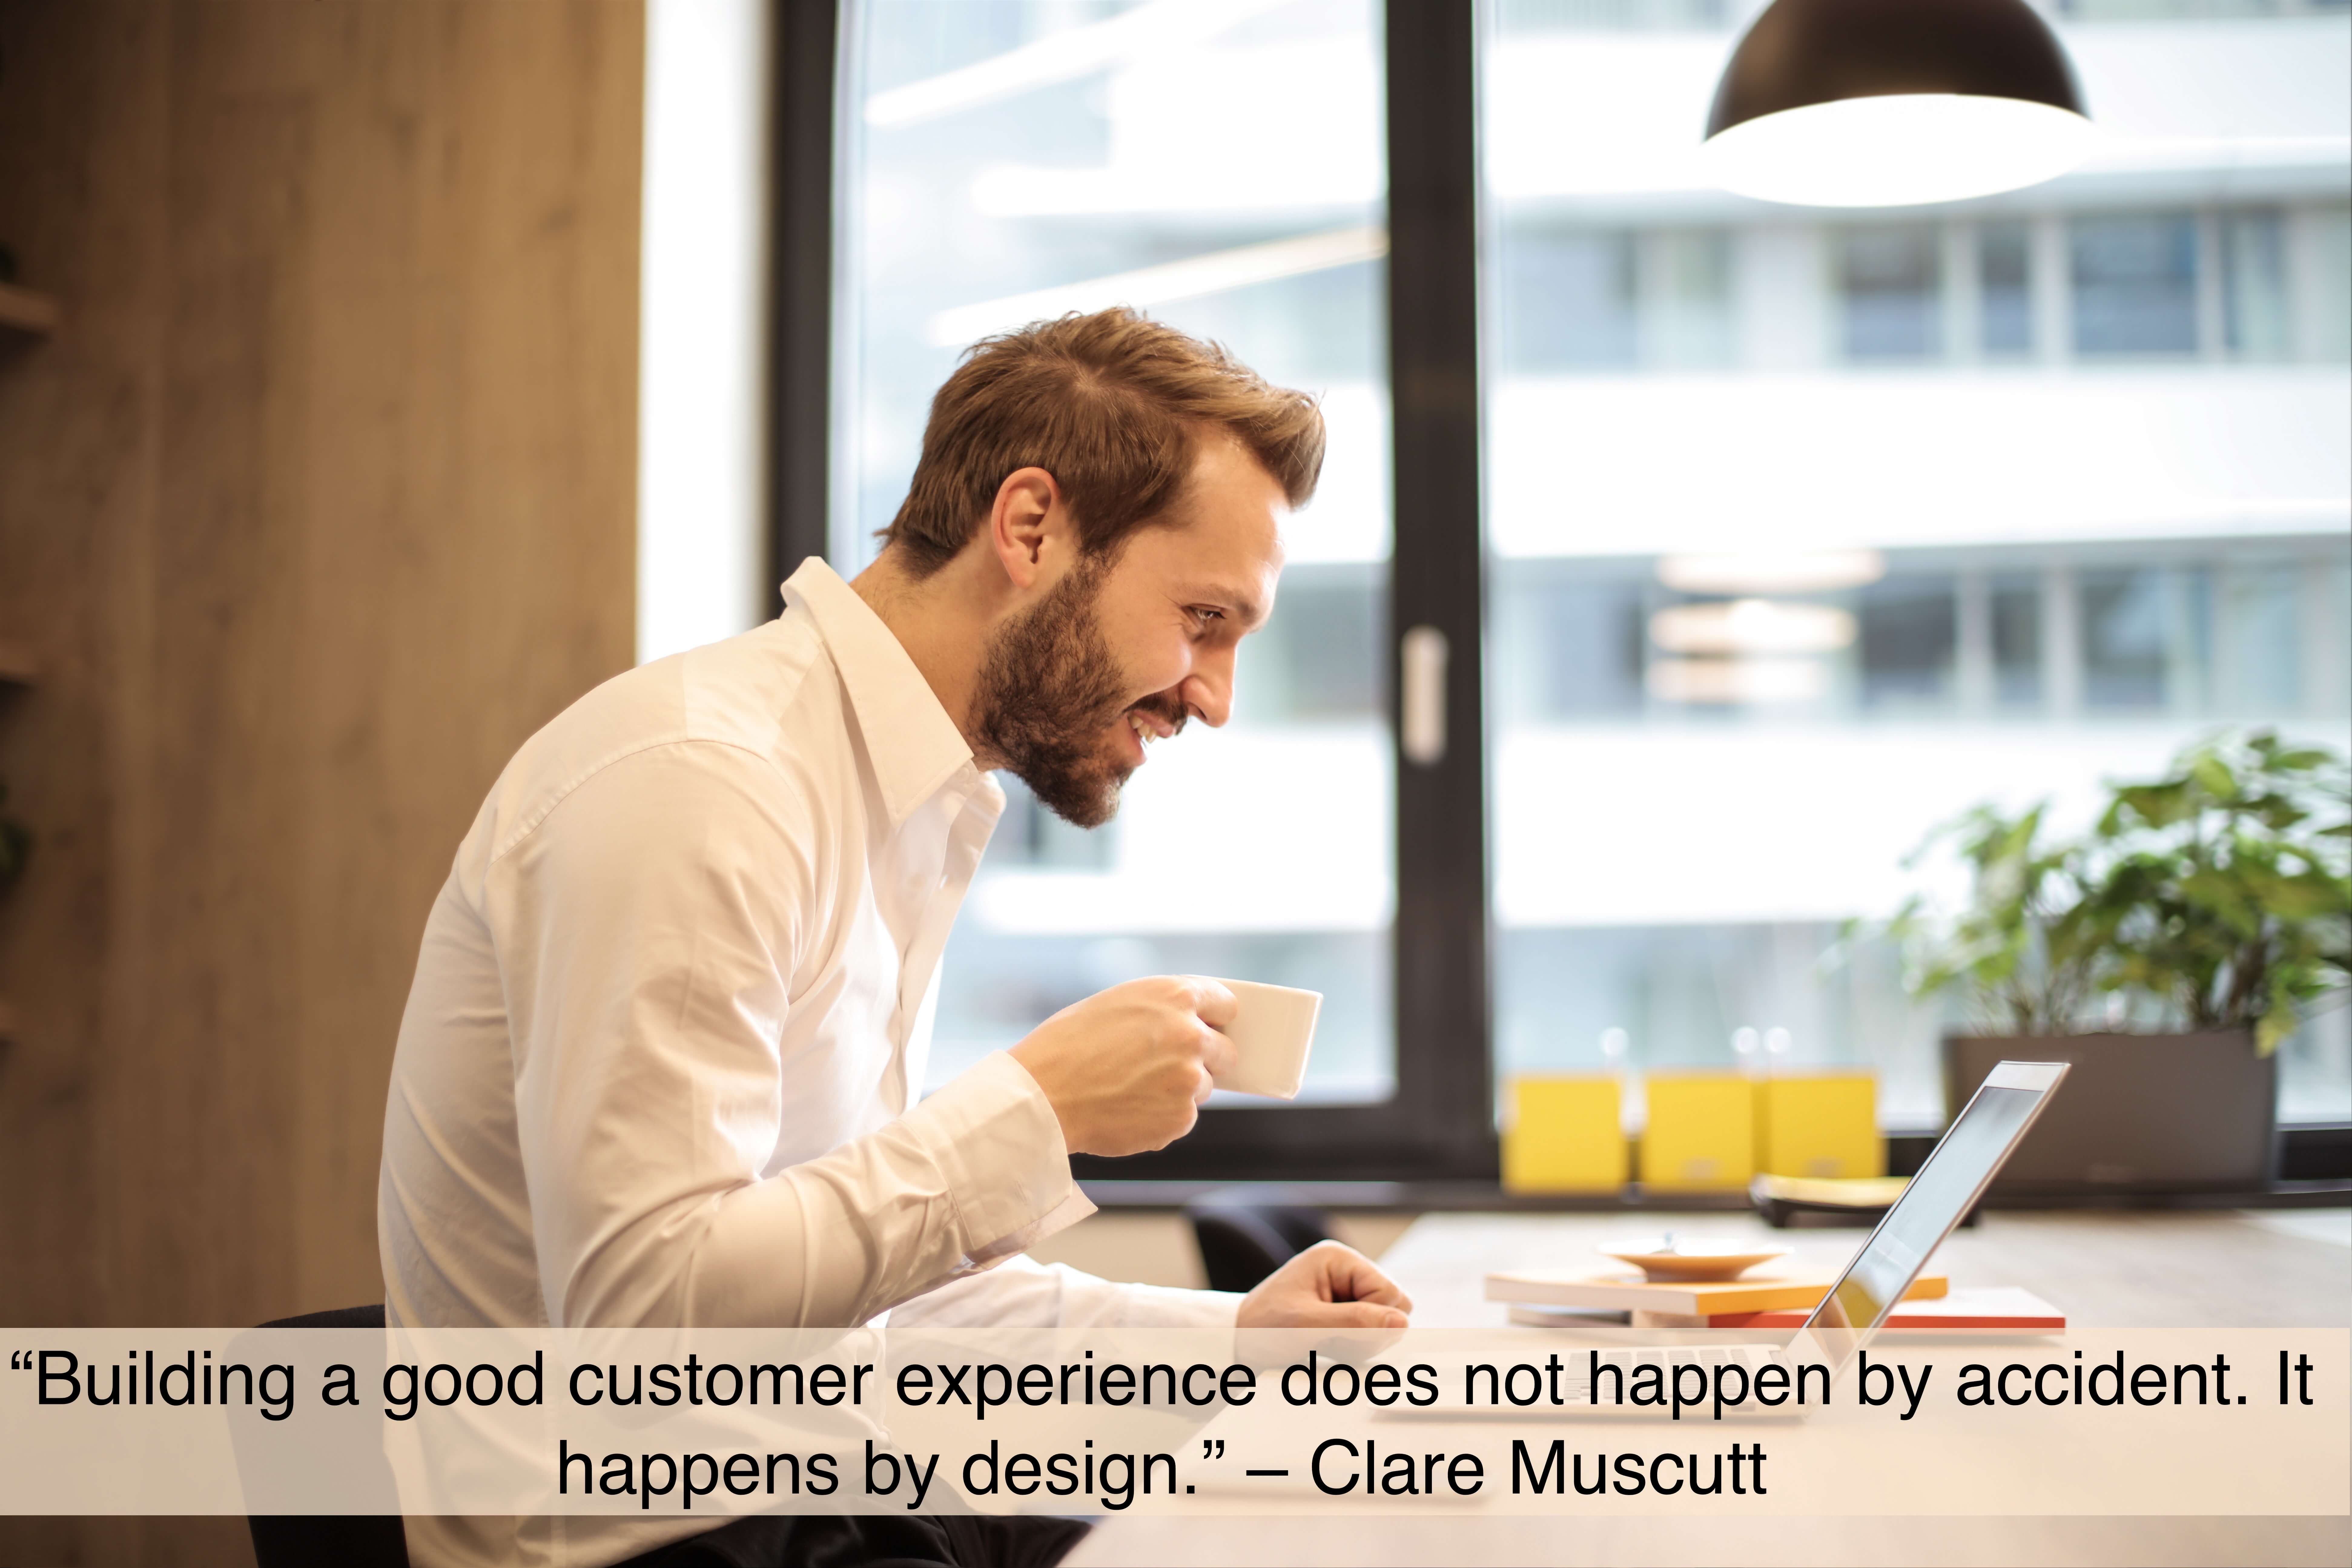 """Building a good customer experience does not happen by accident. It happens by design.""- quote by Clare Muscutt"